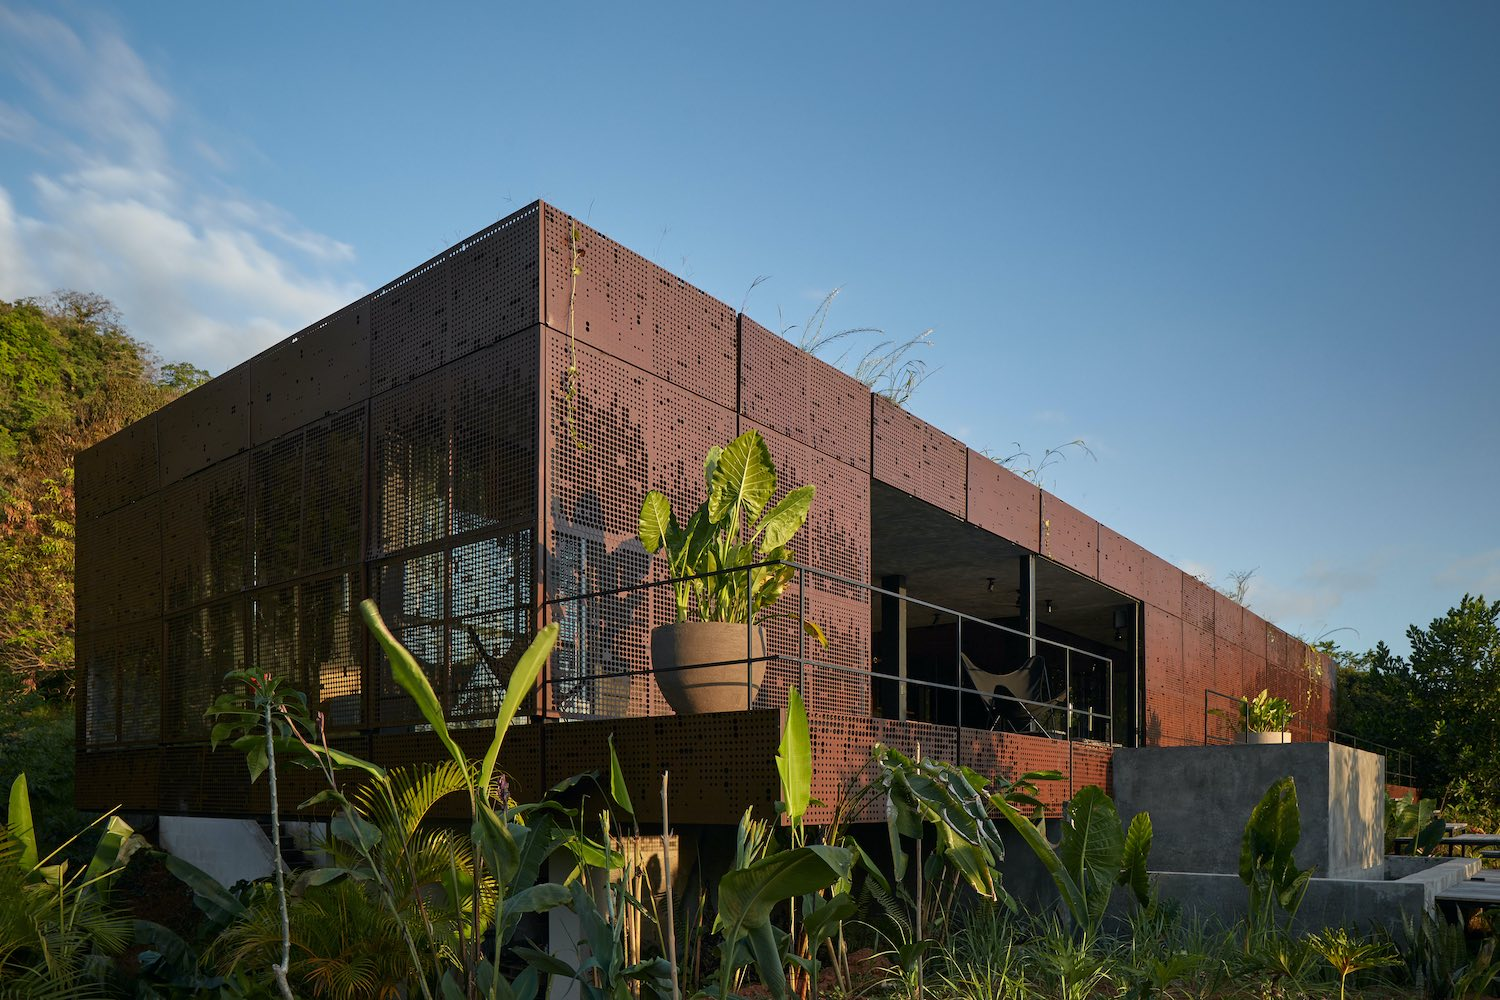 metallic house surrounded with green plants